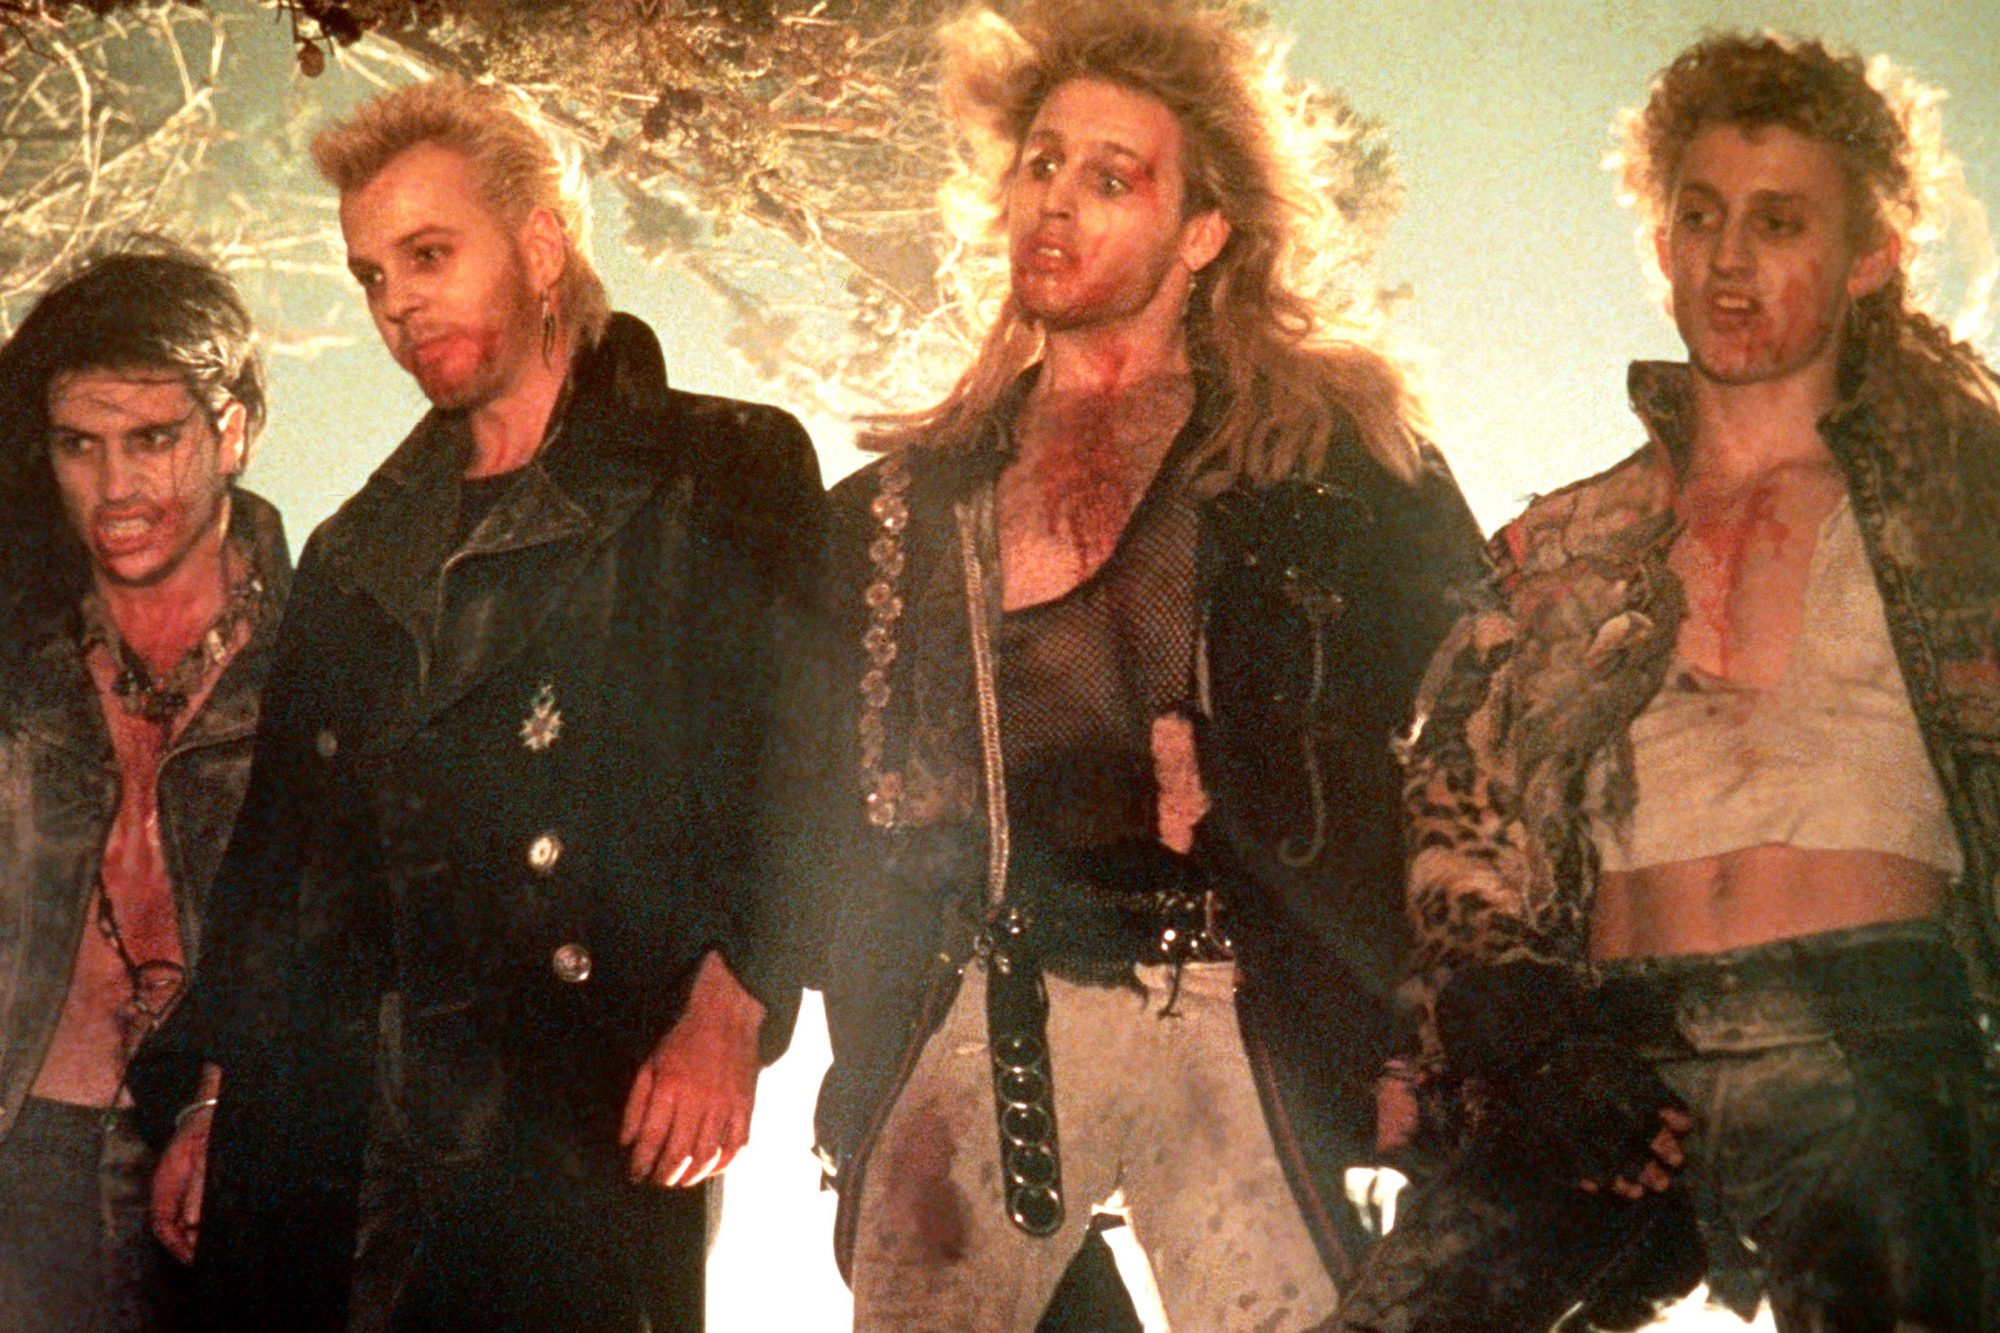 THE LOST BOYS, from left, Billy Wirth, Kiefer Sutherland, Brooke McCarter, Alex Winter, 1987,